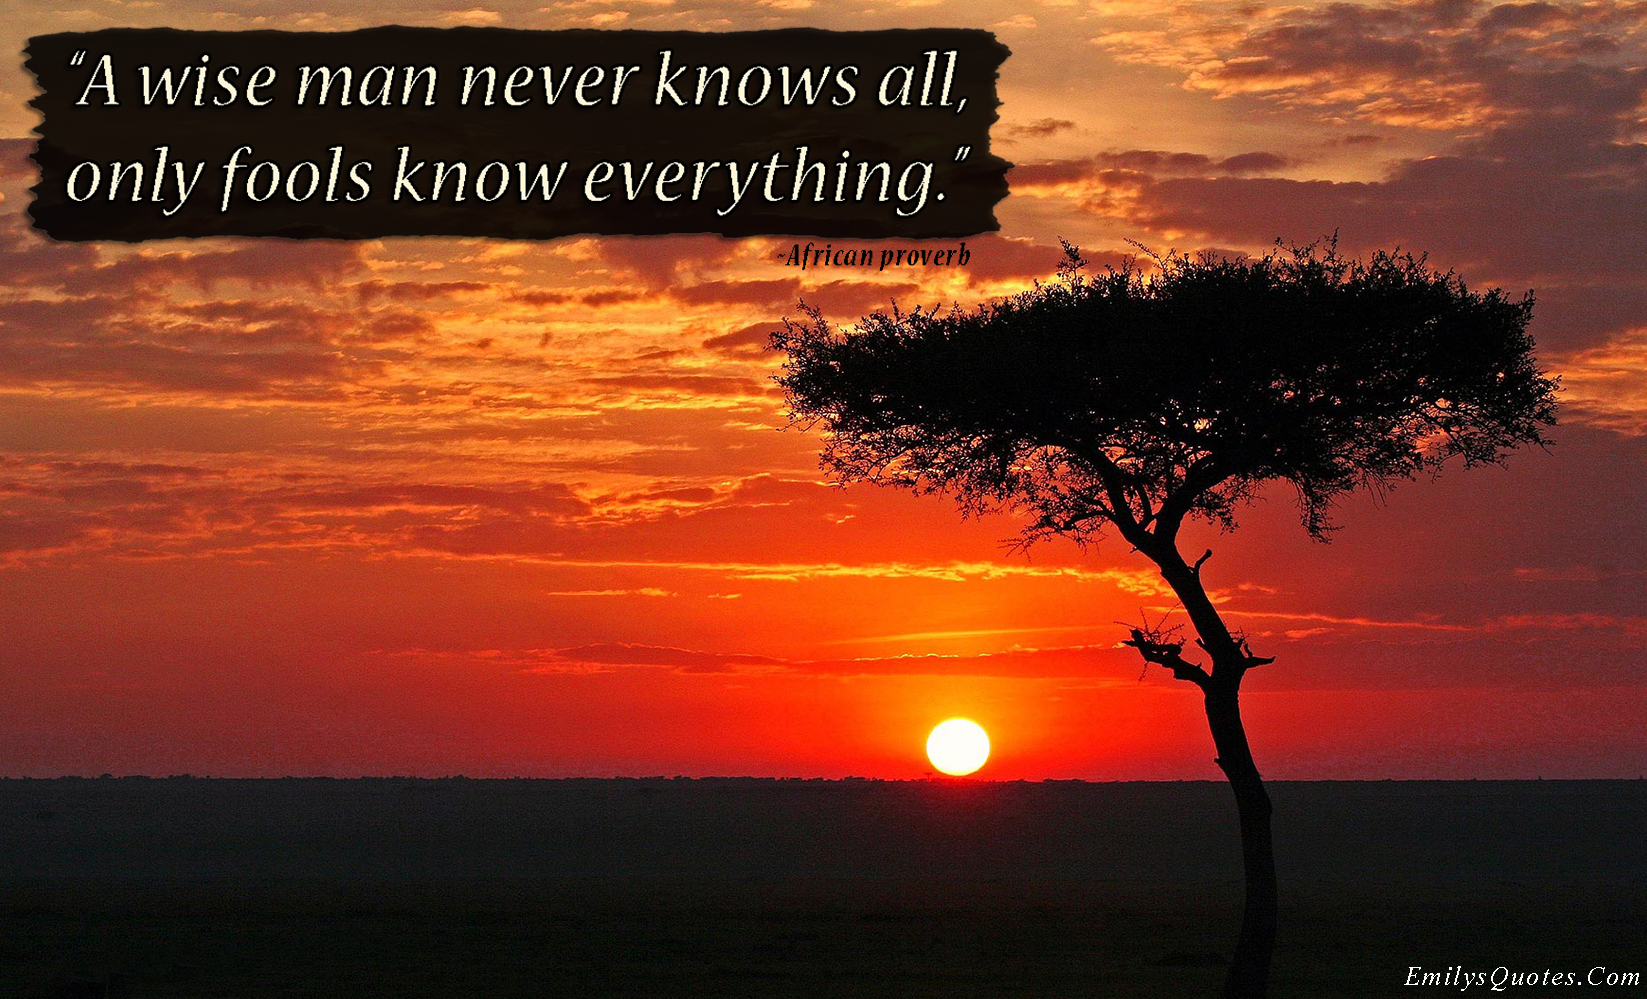 EmilysQuotes.Com - wise, knowing, fool, African proverb, intelligence, funny